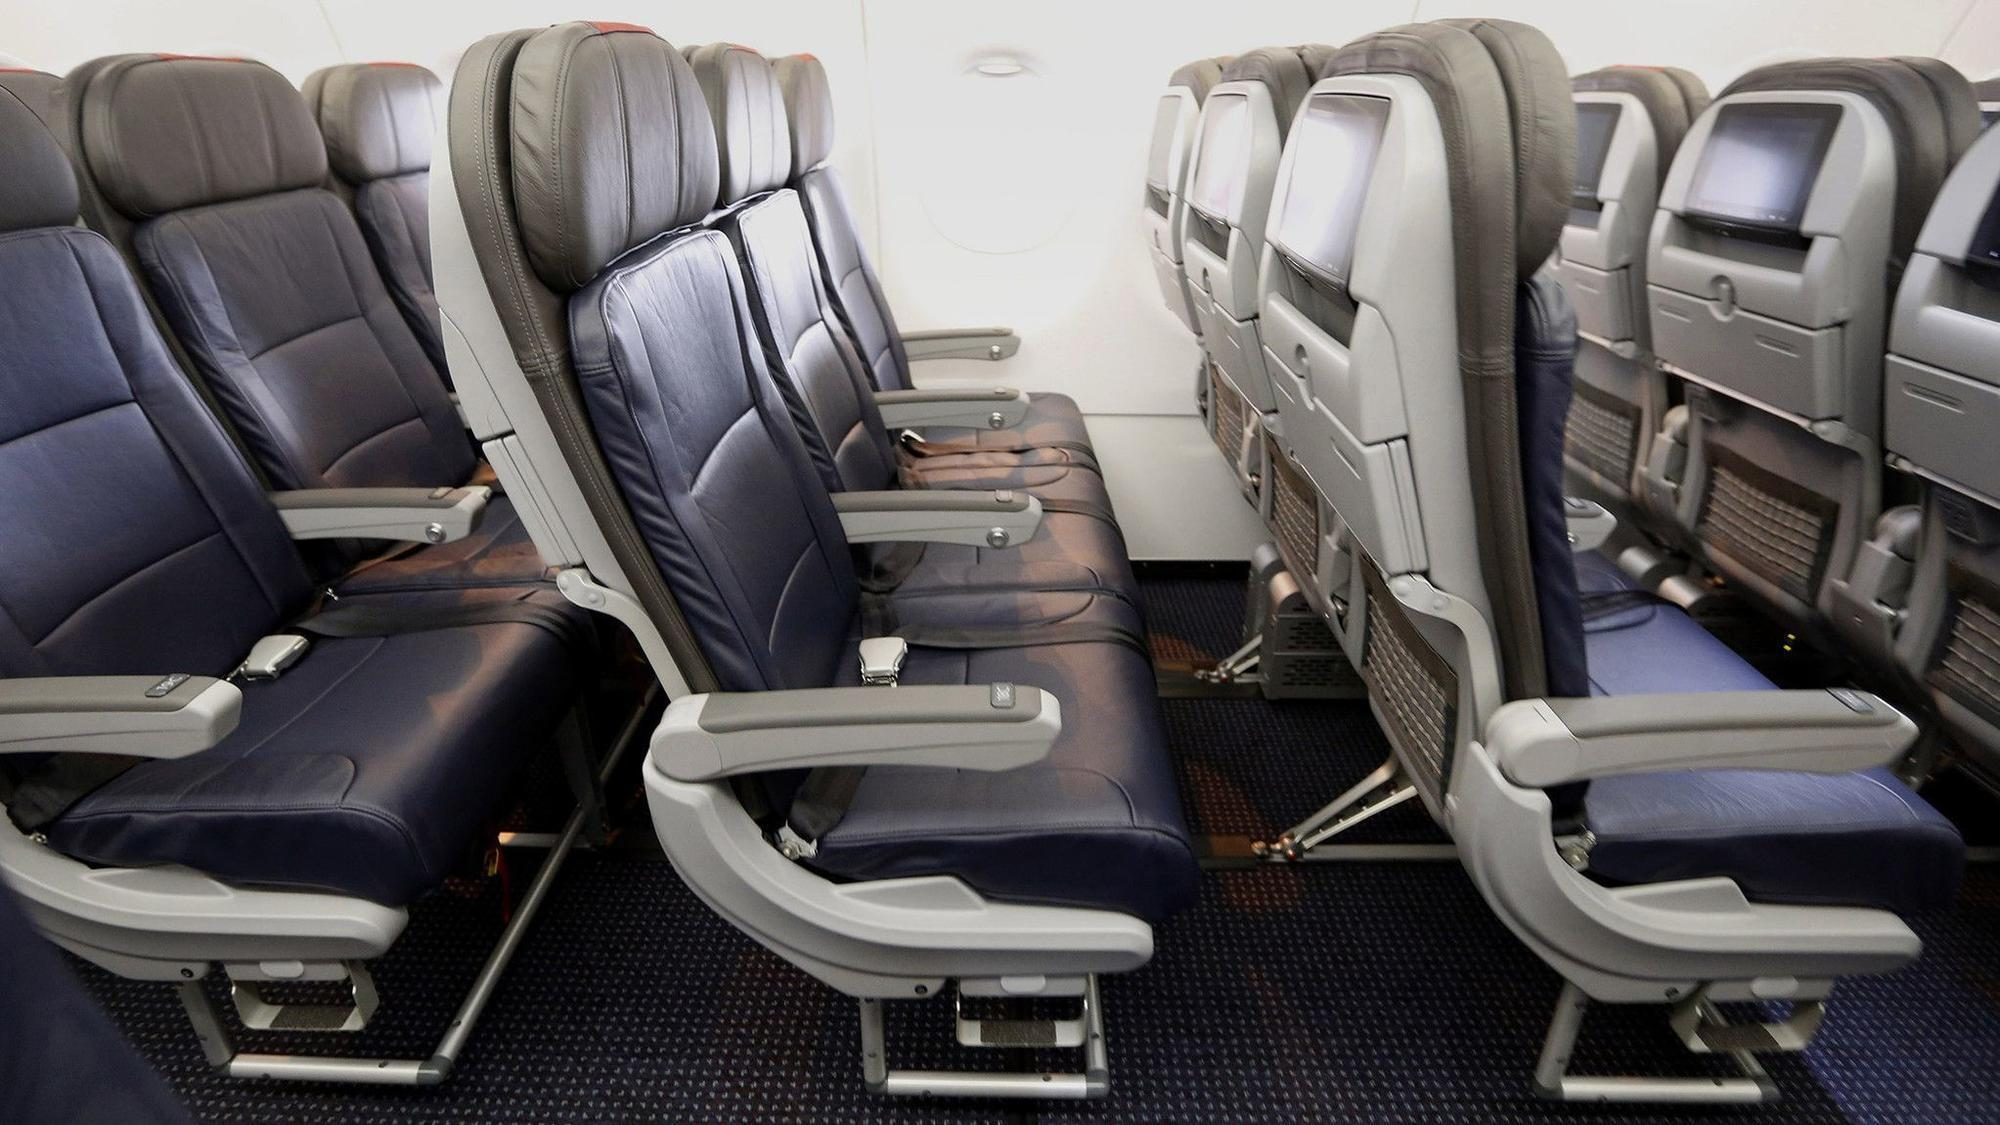 Does This Airline Seat Make Me Look Fat